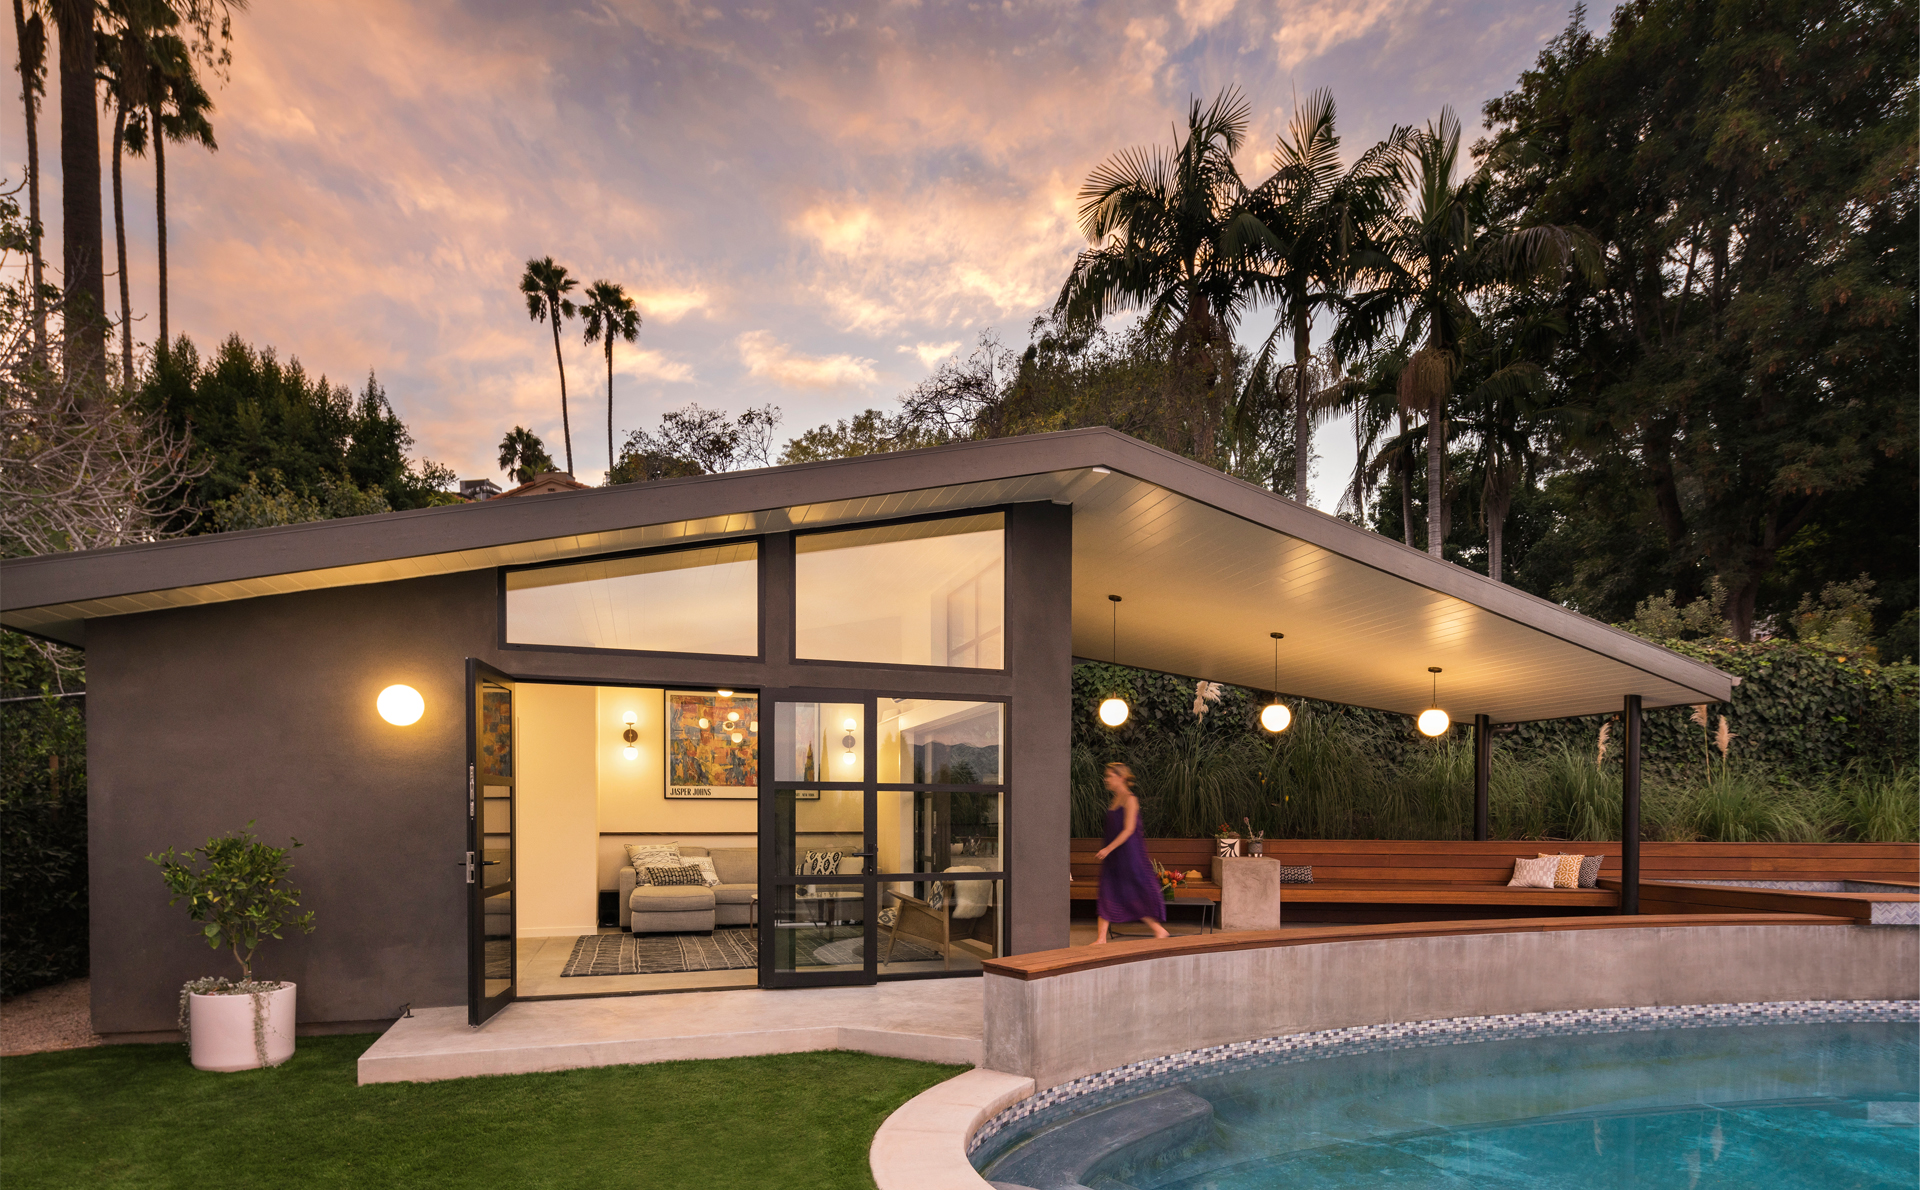 008-los-feliz-pool-house-california-fleetwood-sliding-door-modern-globe-lighting